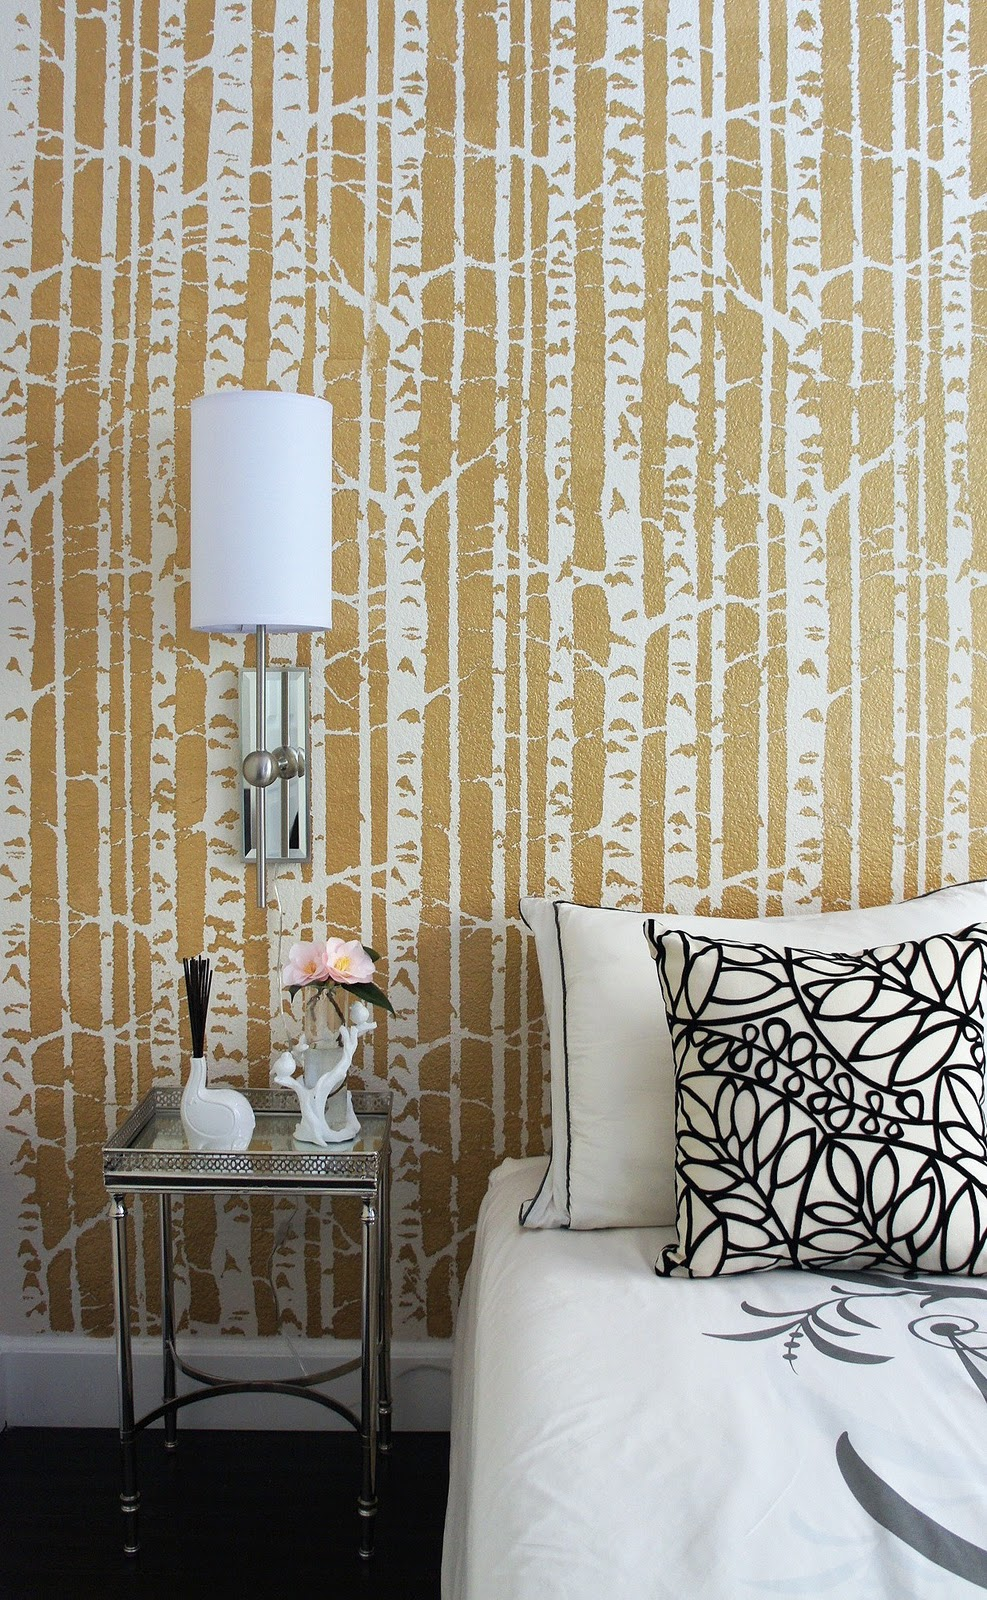 Swanky Swell: Birch Tree Wall Stencils